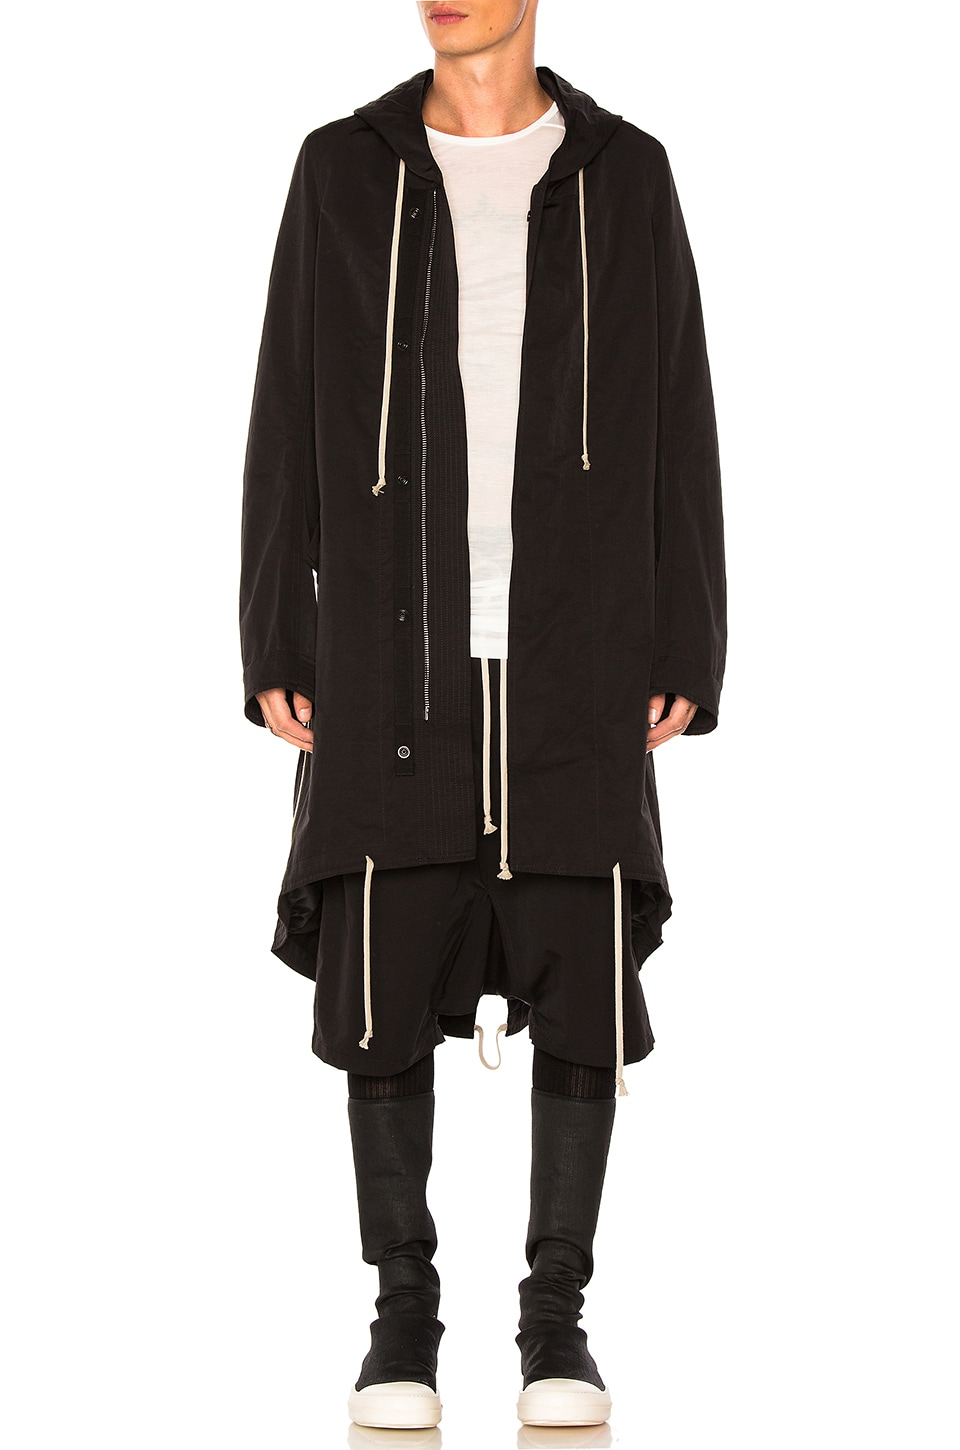 Fishtail Parka by DRKSHDW by Rick Owens